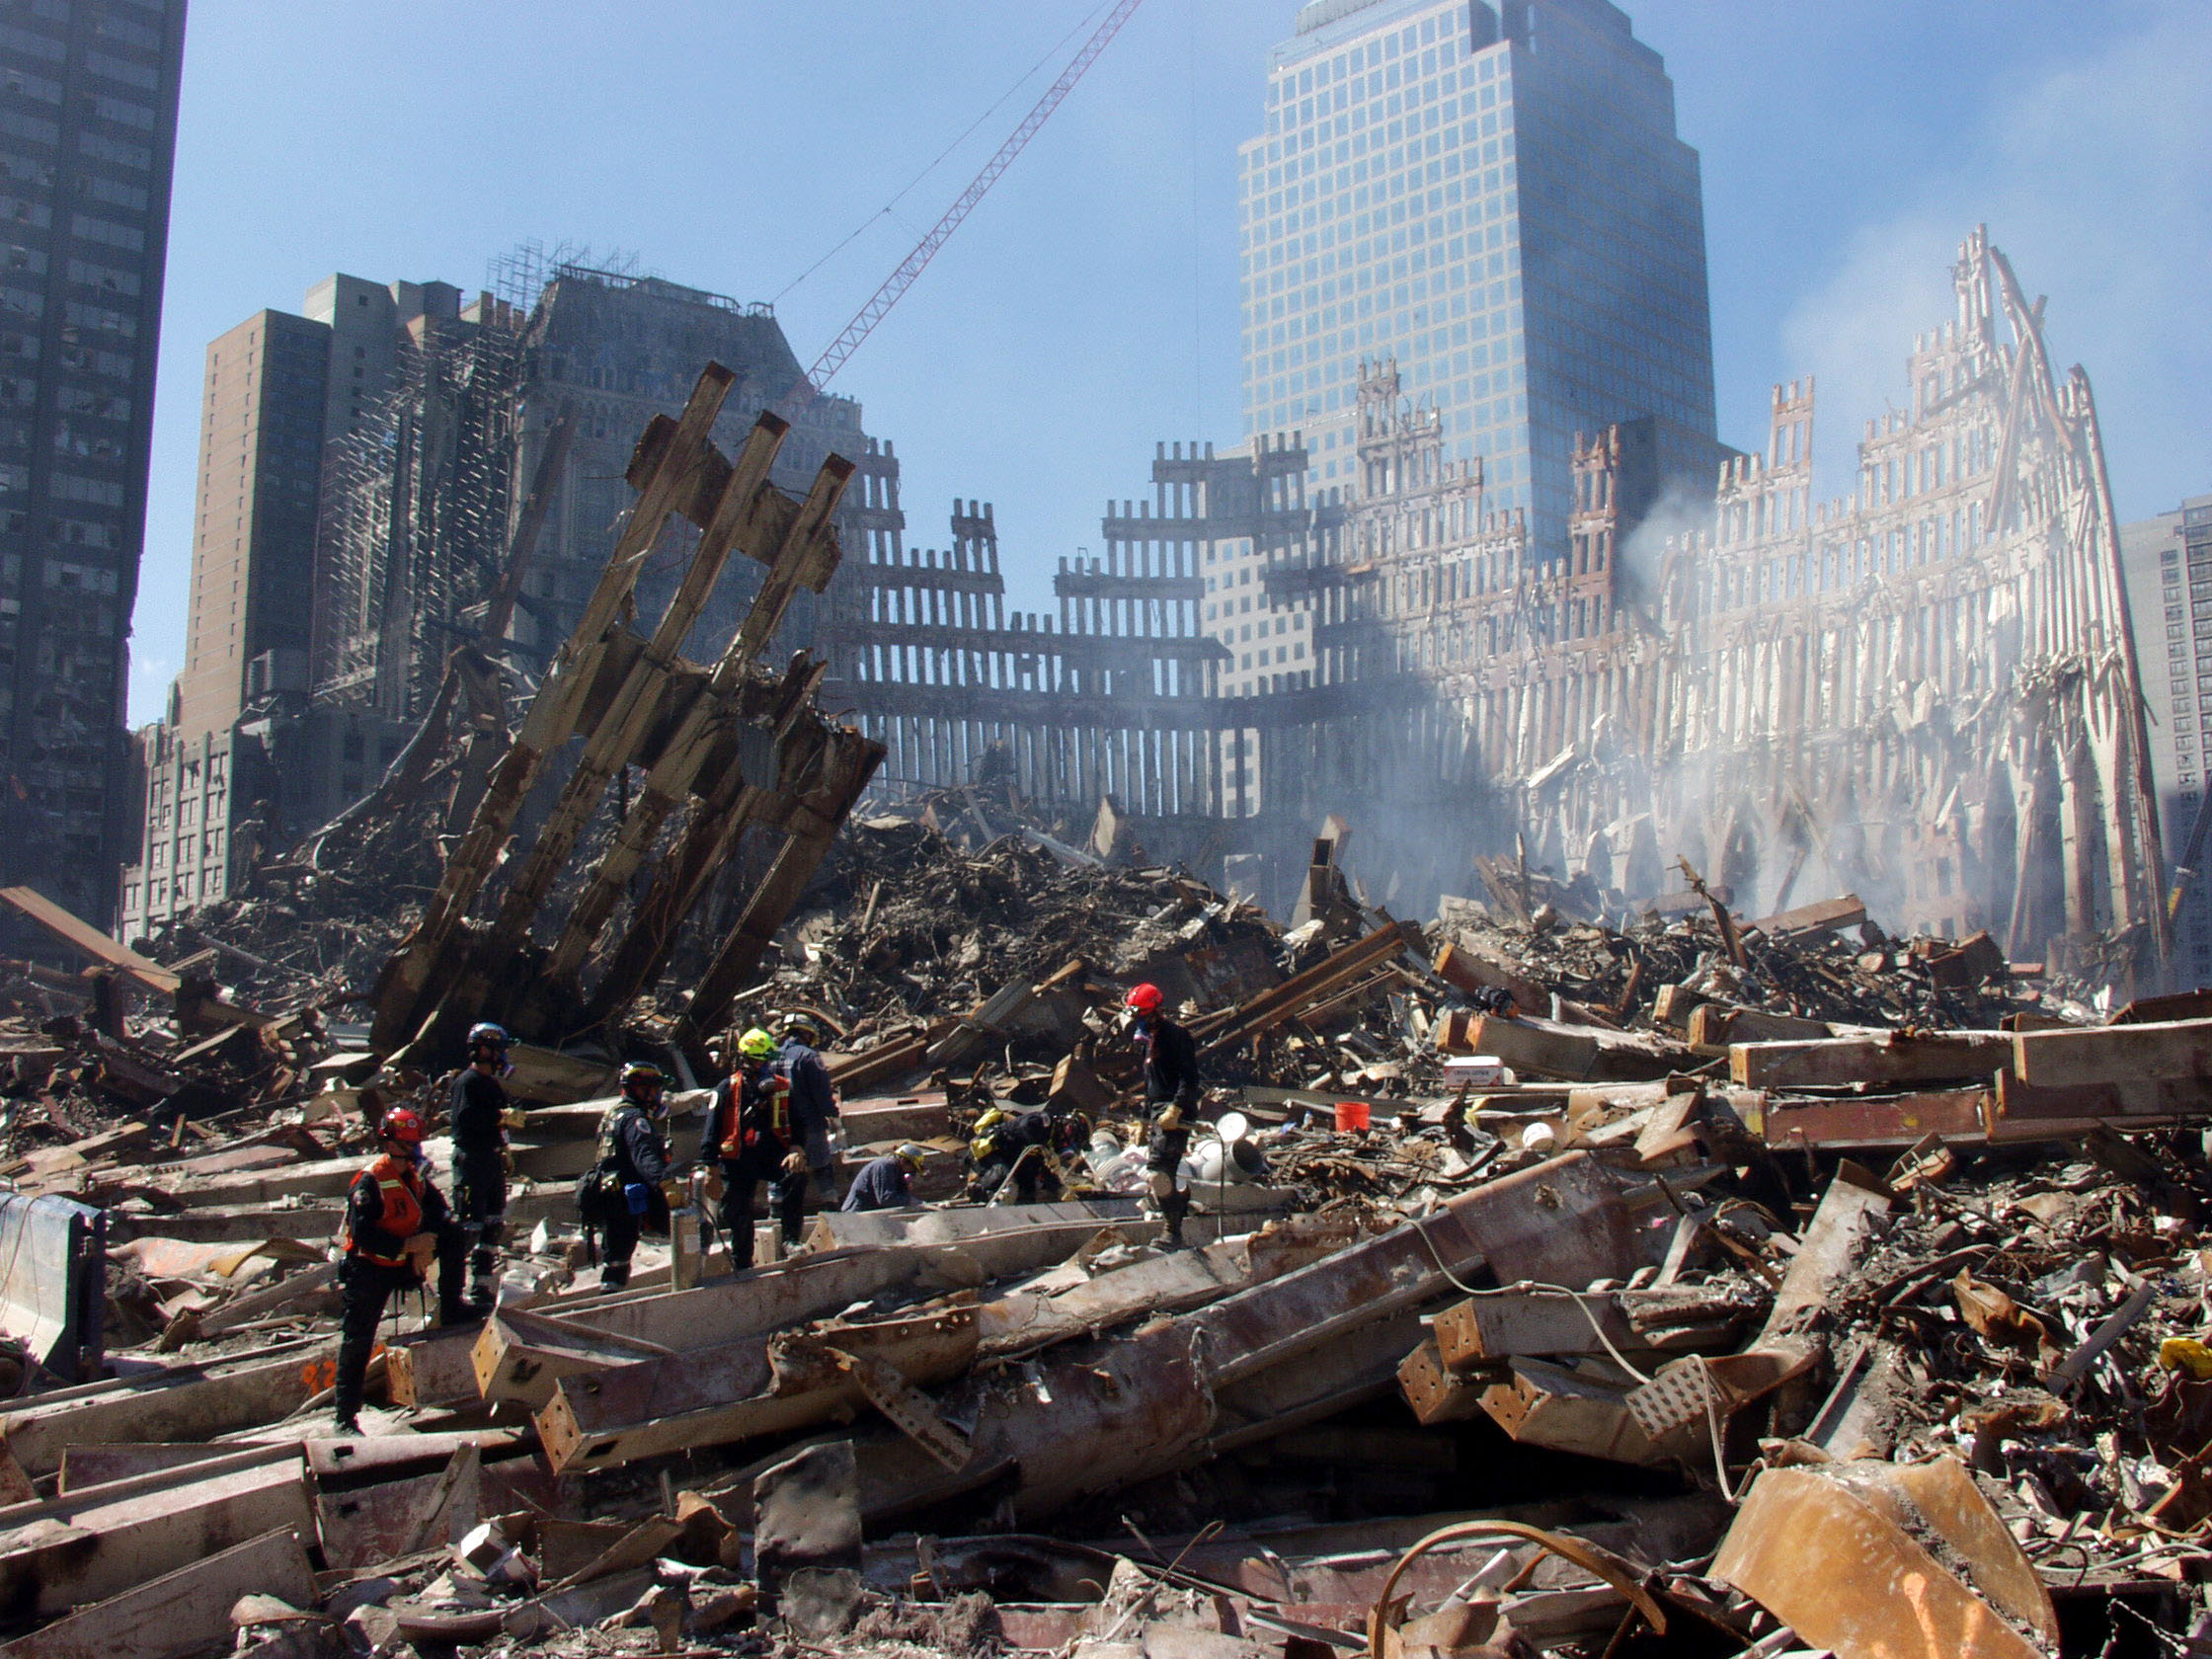 an overview of the terrorist attacks on september 11 2001 The september 11, 2001 attacks fueled criticisms within the united states of alleged saudi involvement in terrorism or of saudi laxity in acting against terrorist groups.